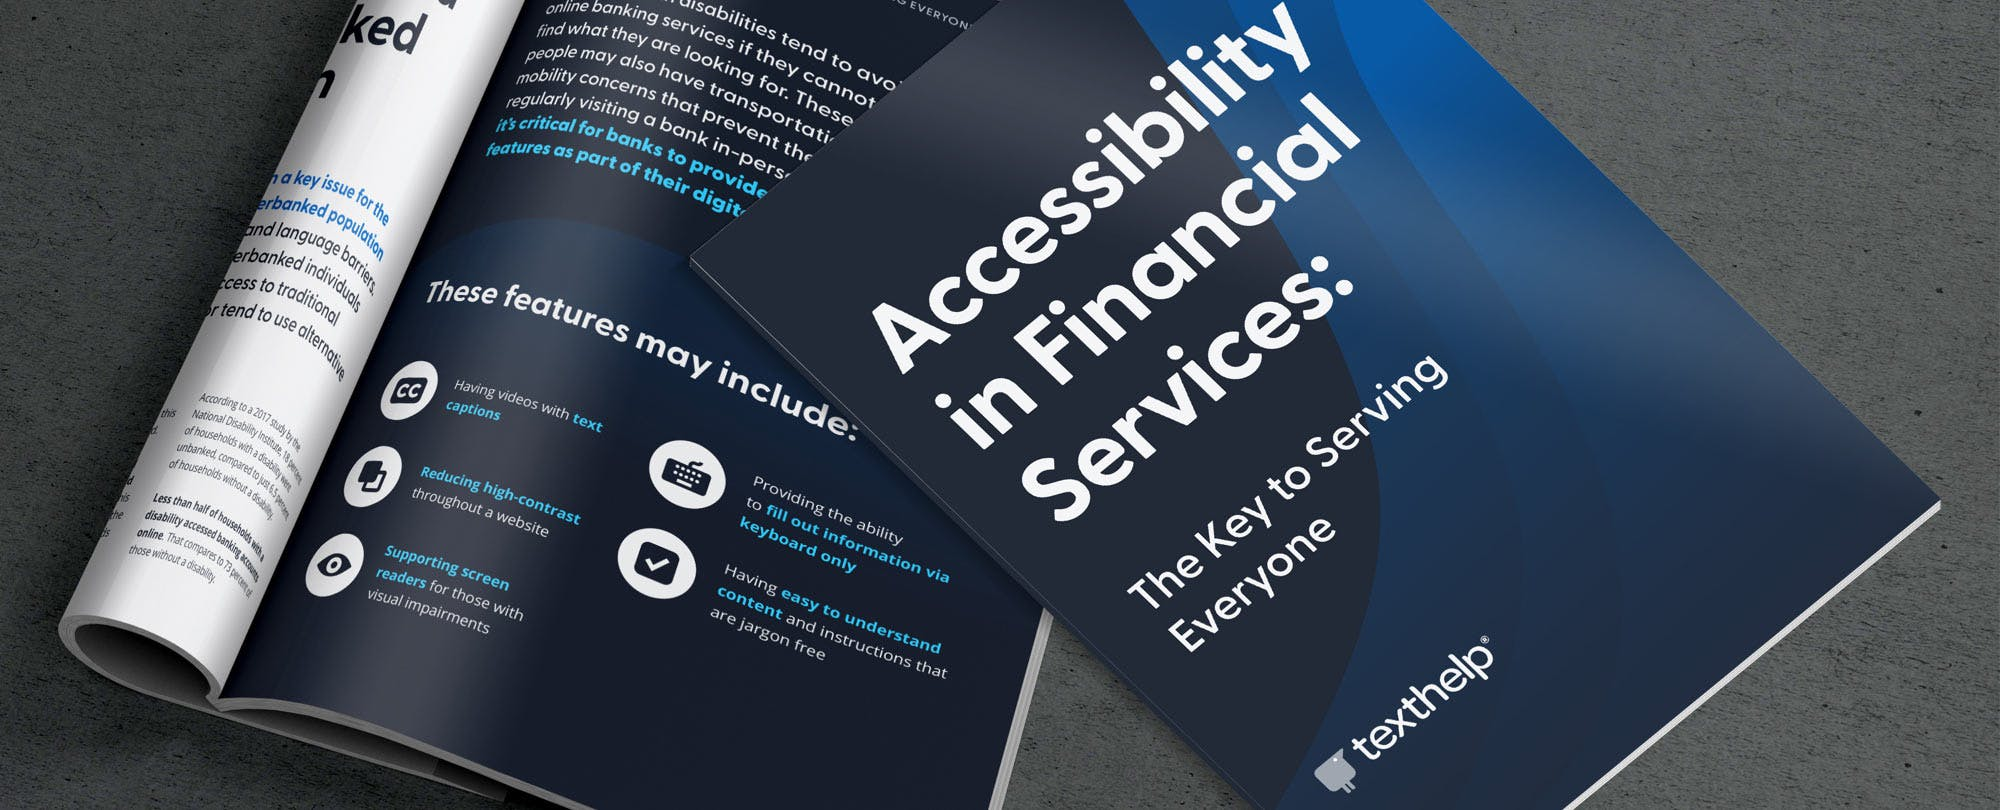 """Front cover and inside spread of """"Accessibility in Financial Services: The Key to Serving Everyone""""."""